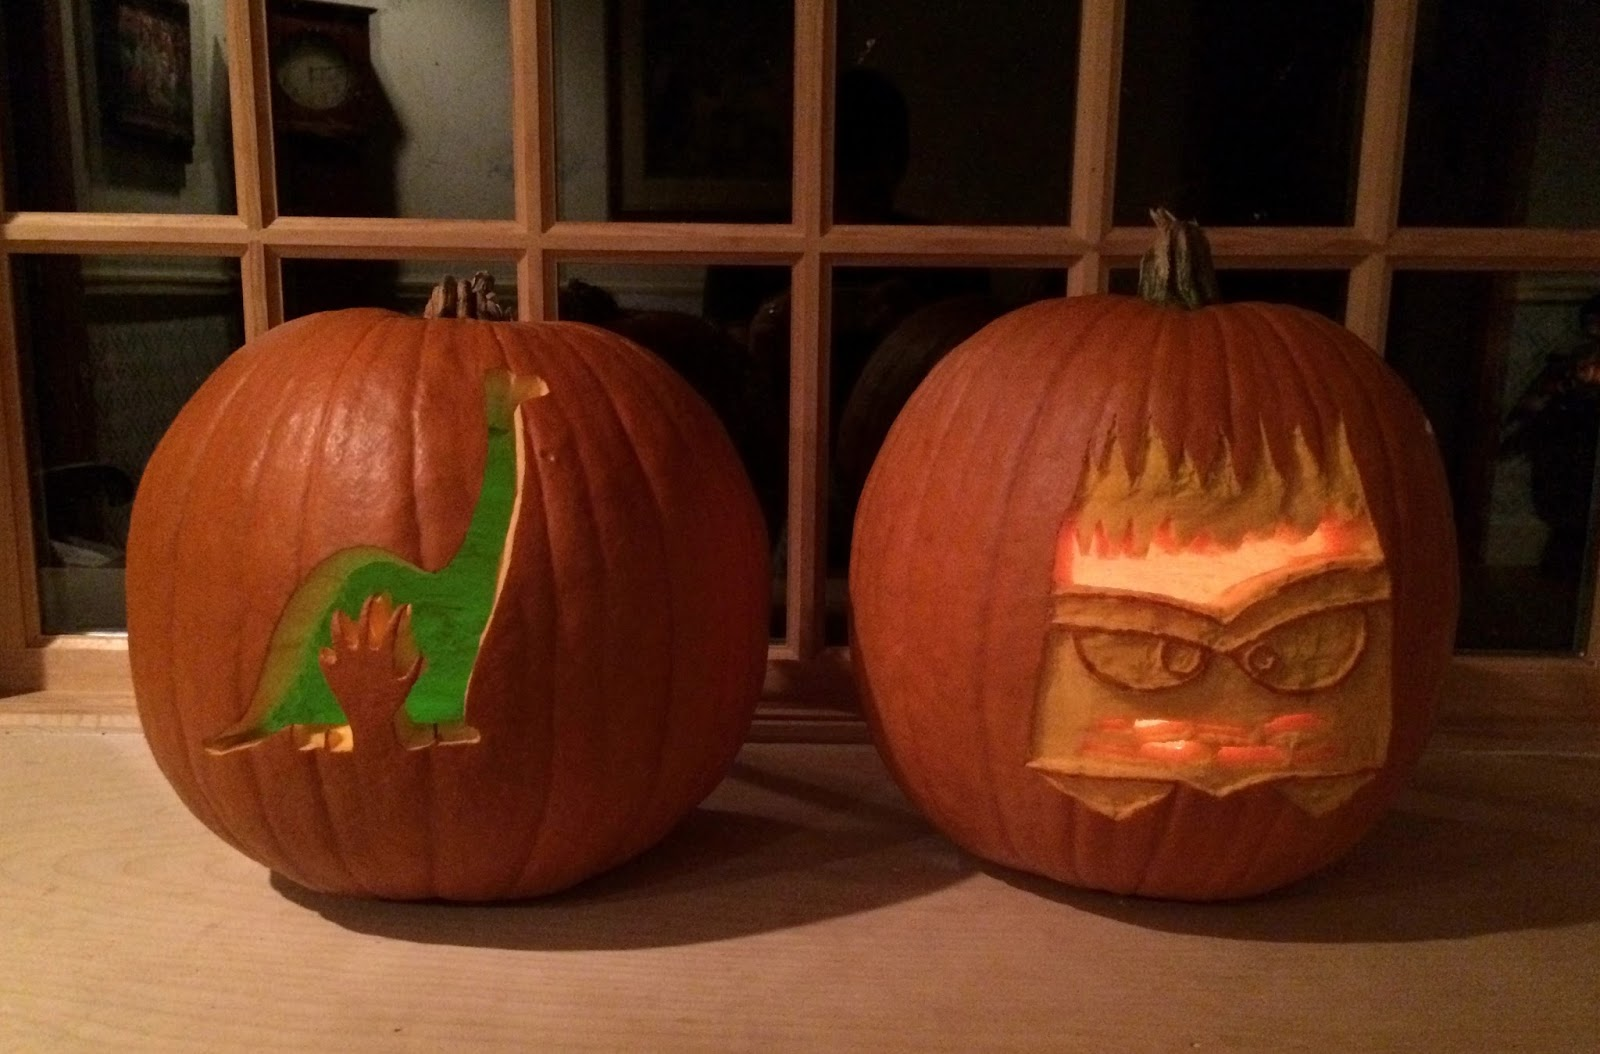 dan the pixar fan  events  pixar themed pumpkin carving  2015